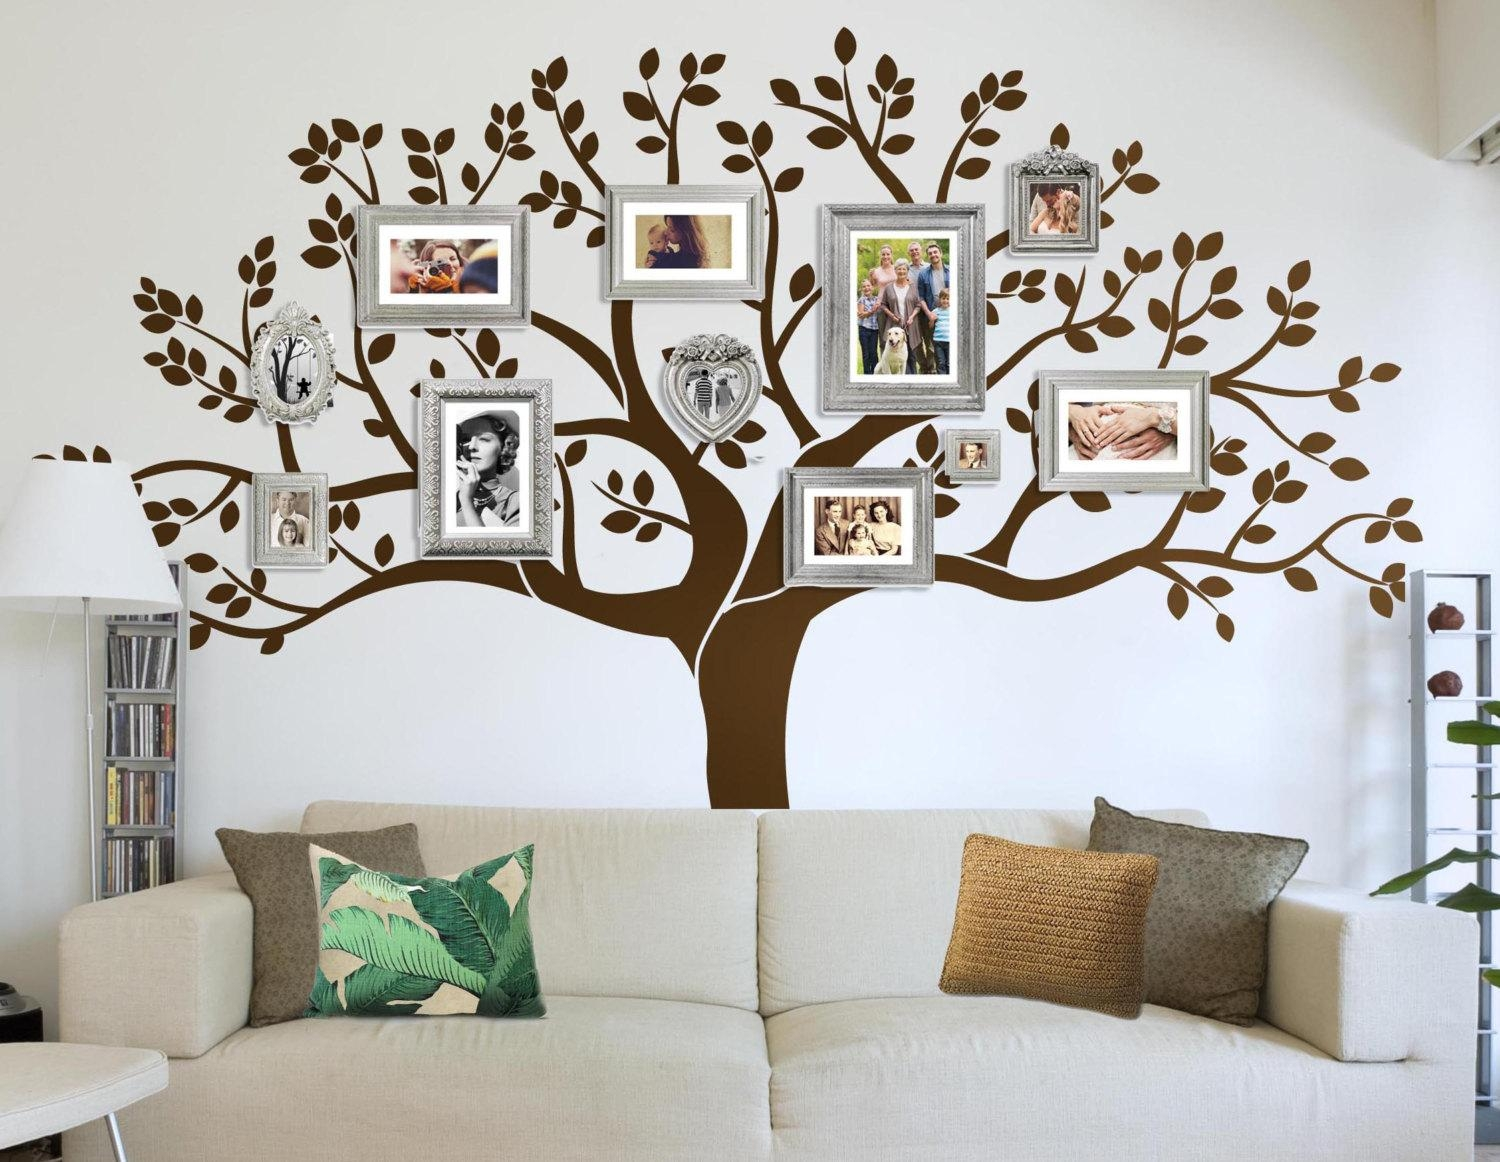 Large Family Tree Wall Decal | Roselawnlutheran Regarding Wall Art Deco Decals (View 3 of 20)